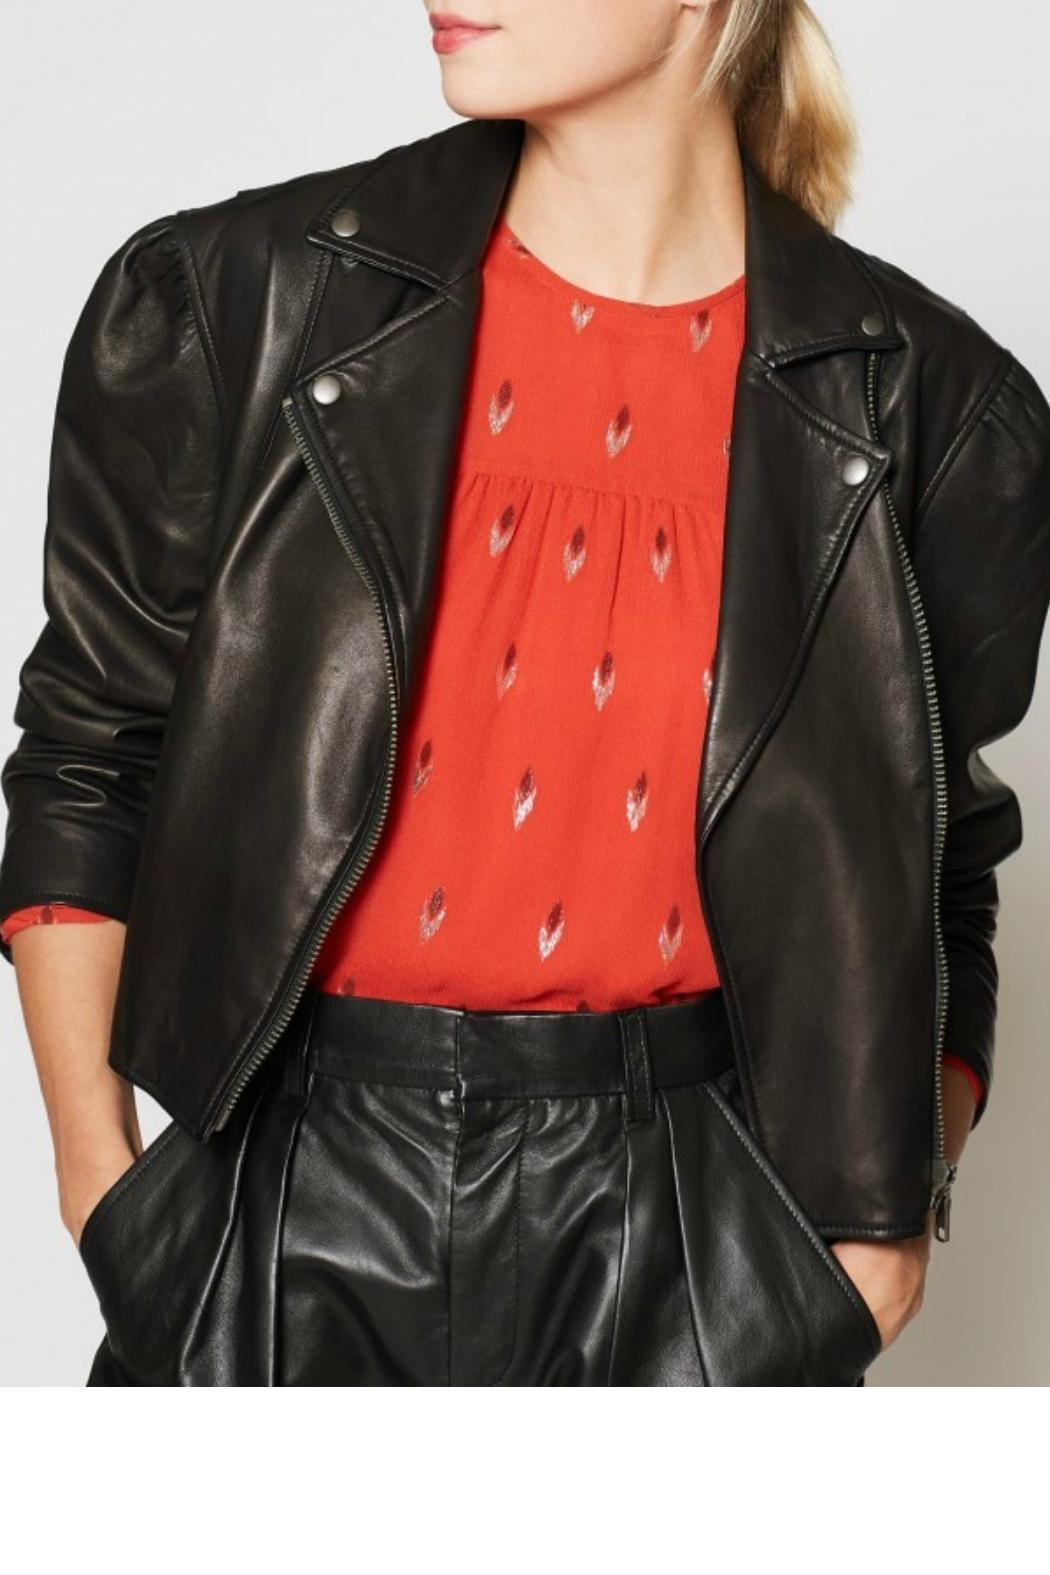 Joie Necia Leather Jacket - Front Full Image